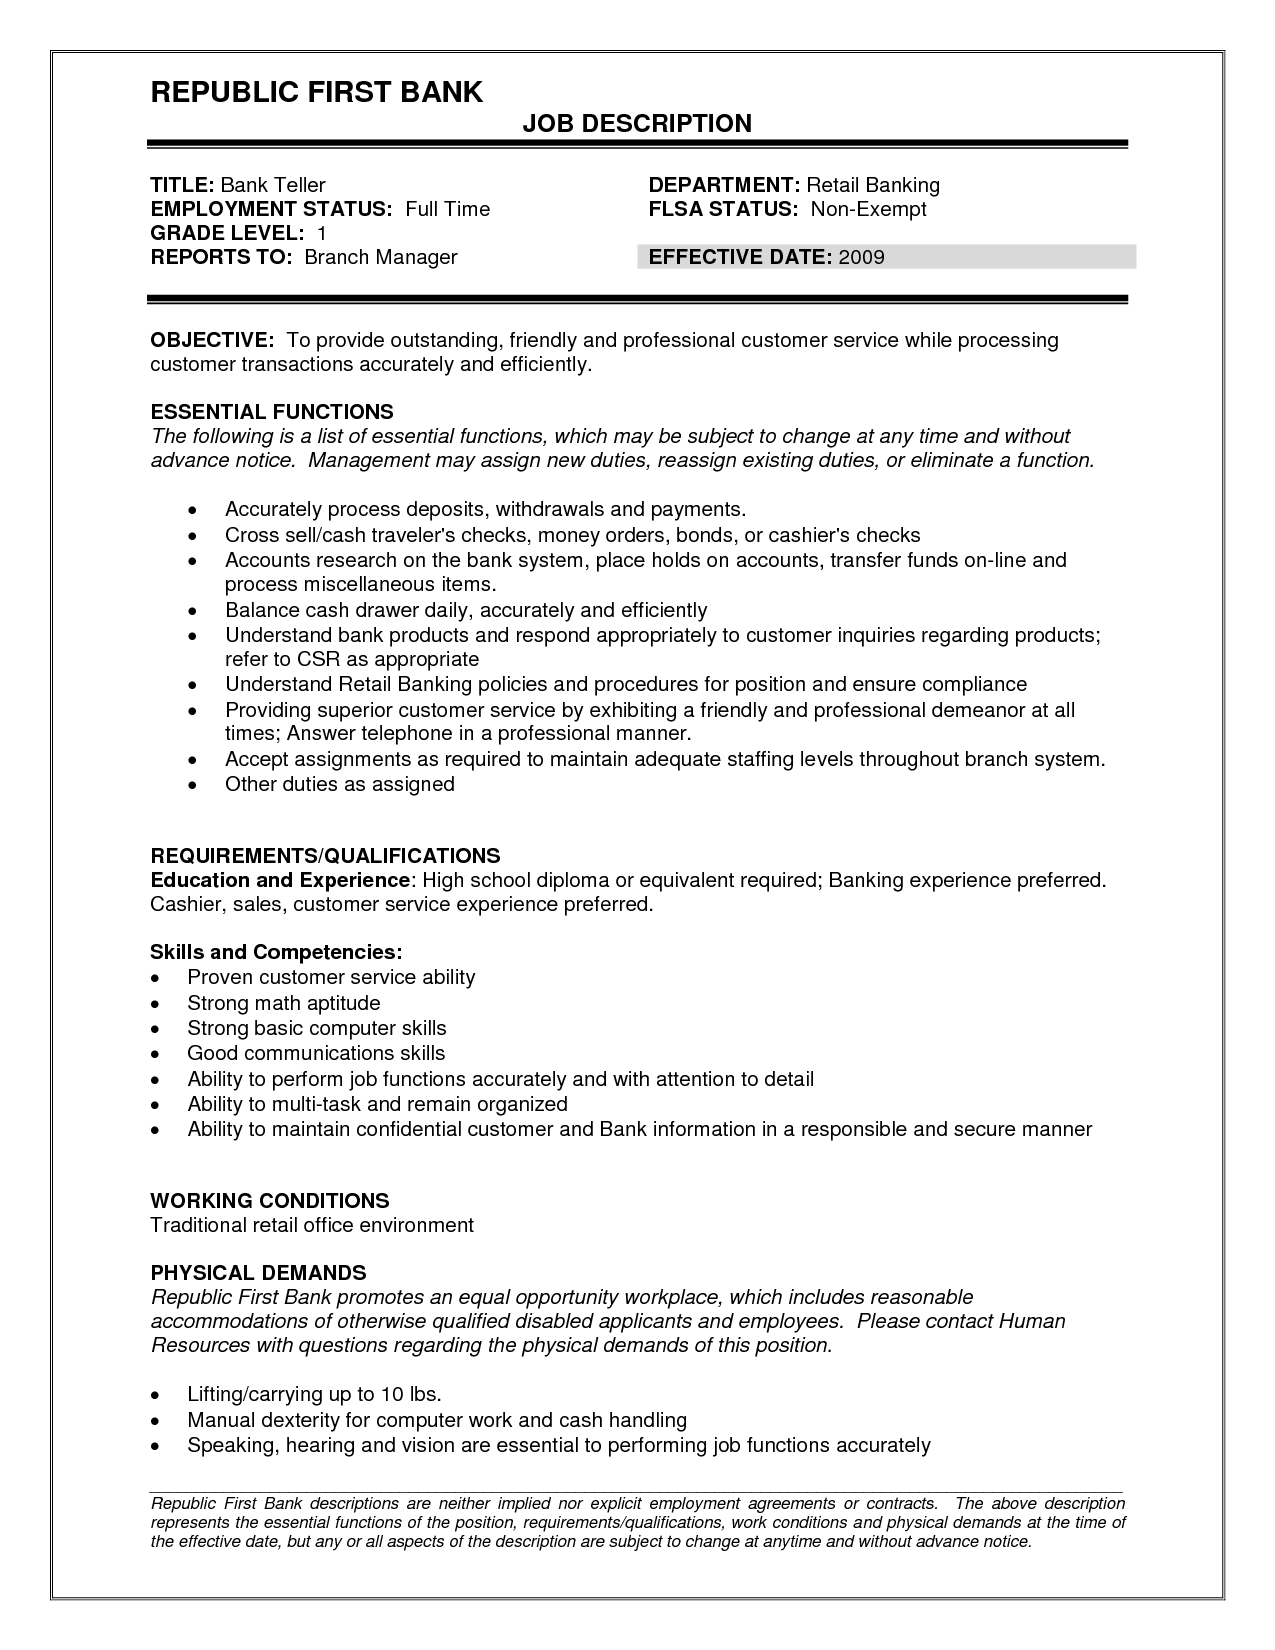 Bank Teller Resume Description Skills of a Bank Teller